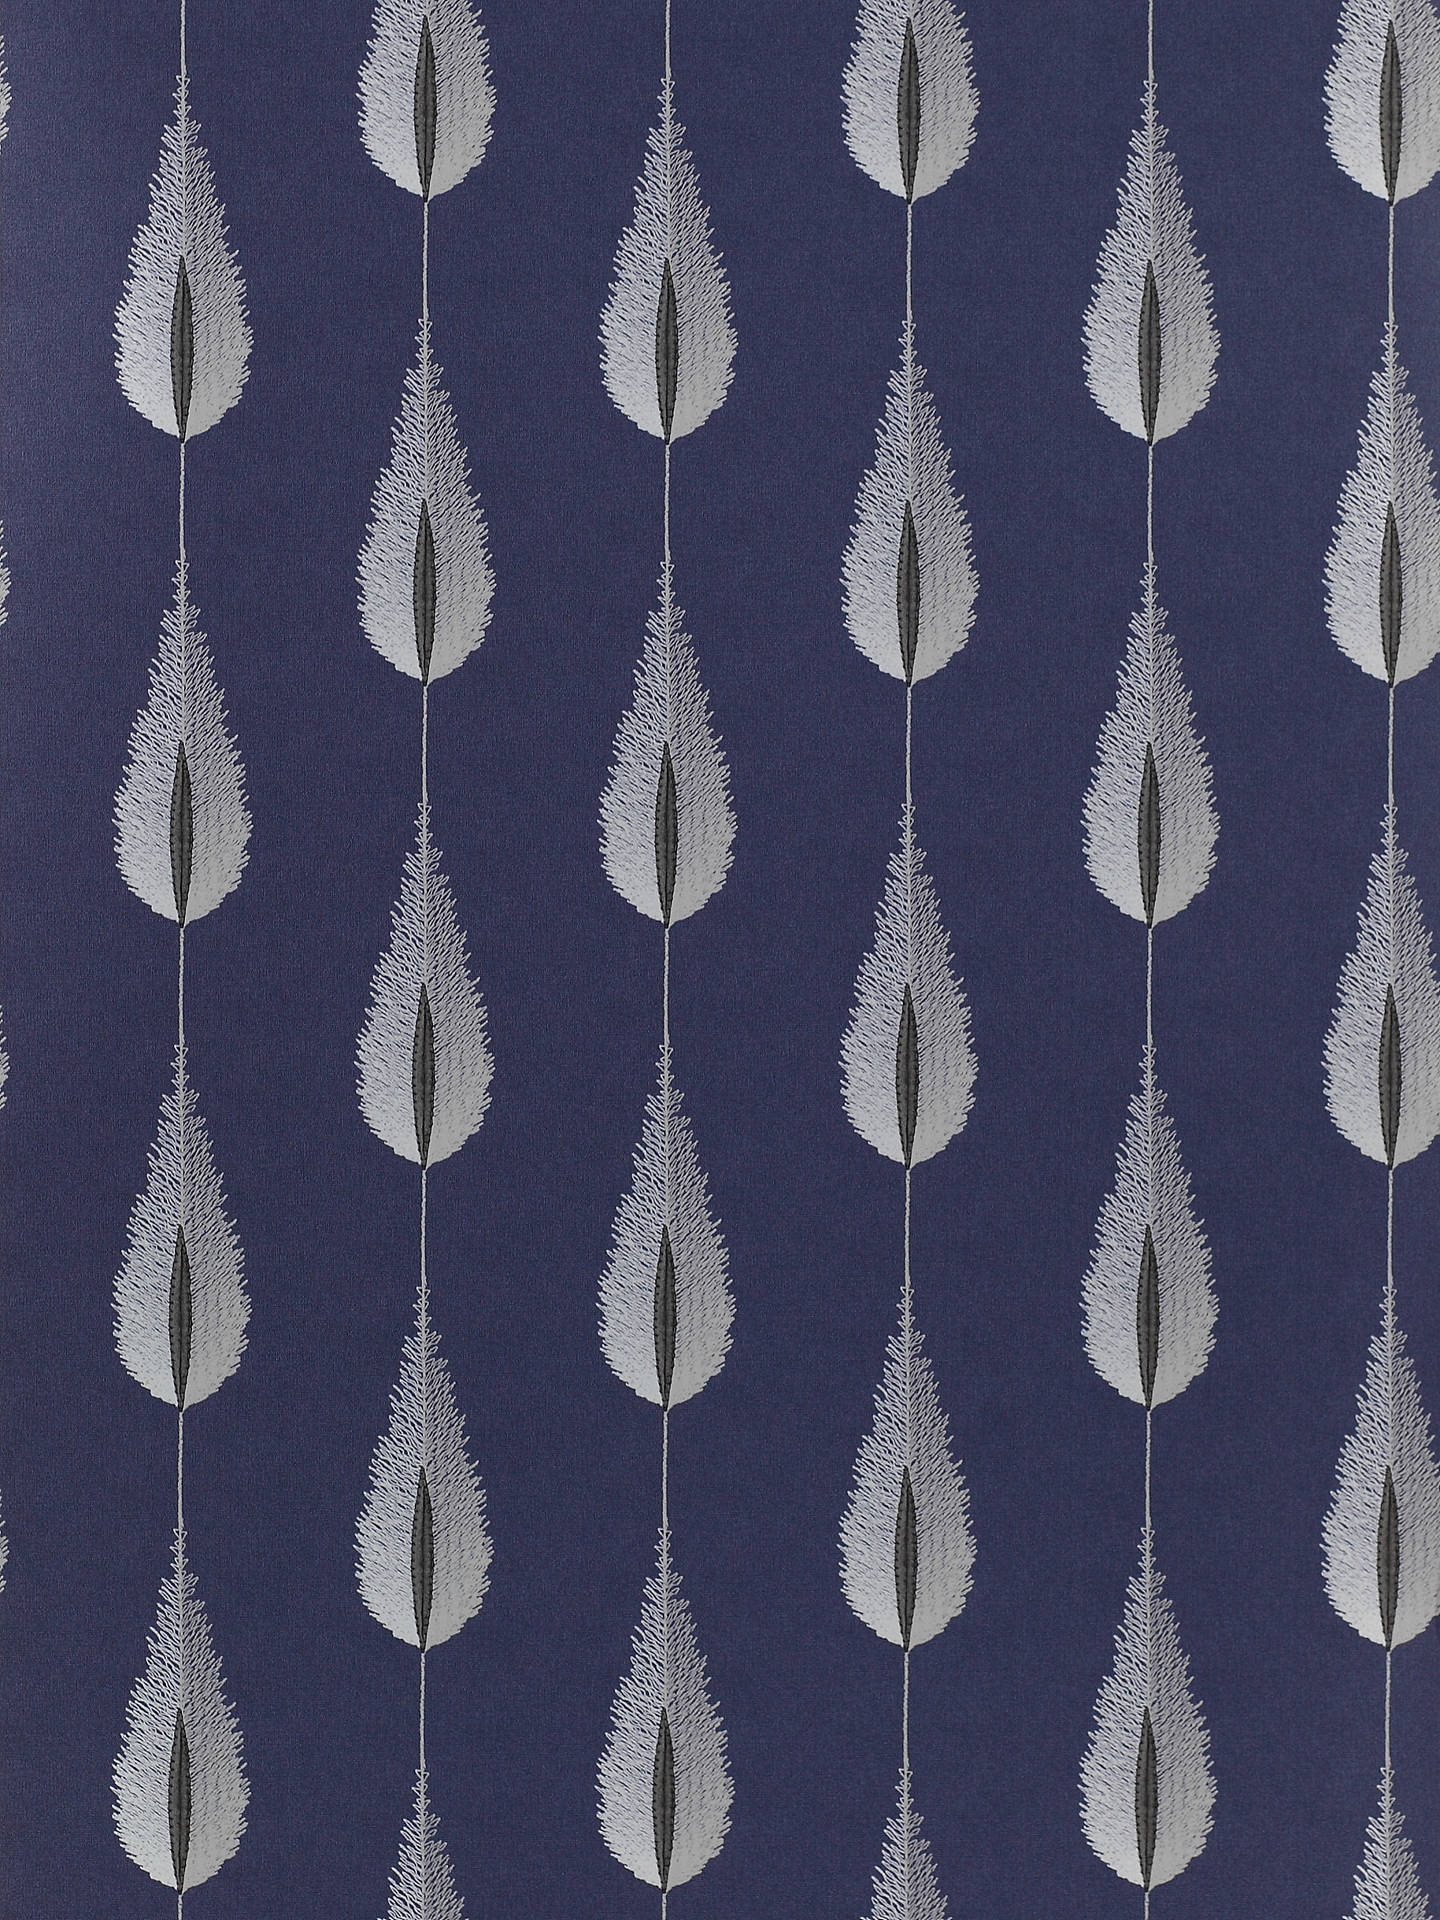 BuyJane Churchill Plato Wallpaper, Midnight J156W-01 Online at johnlewis.com